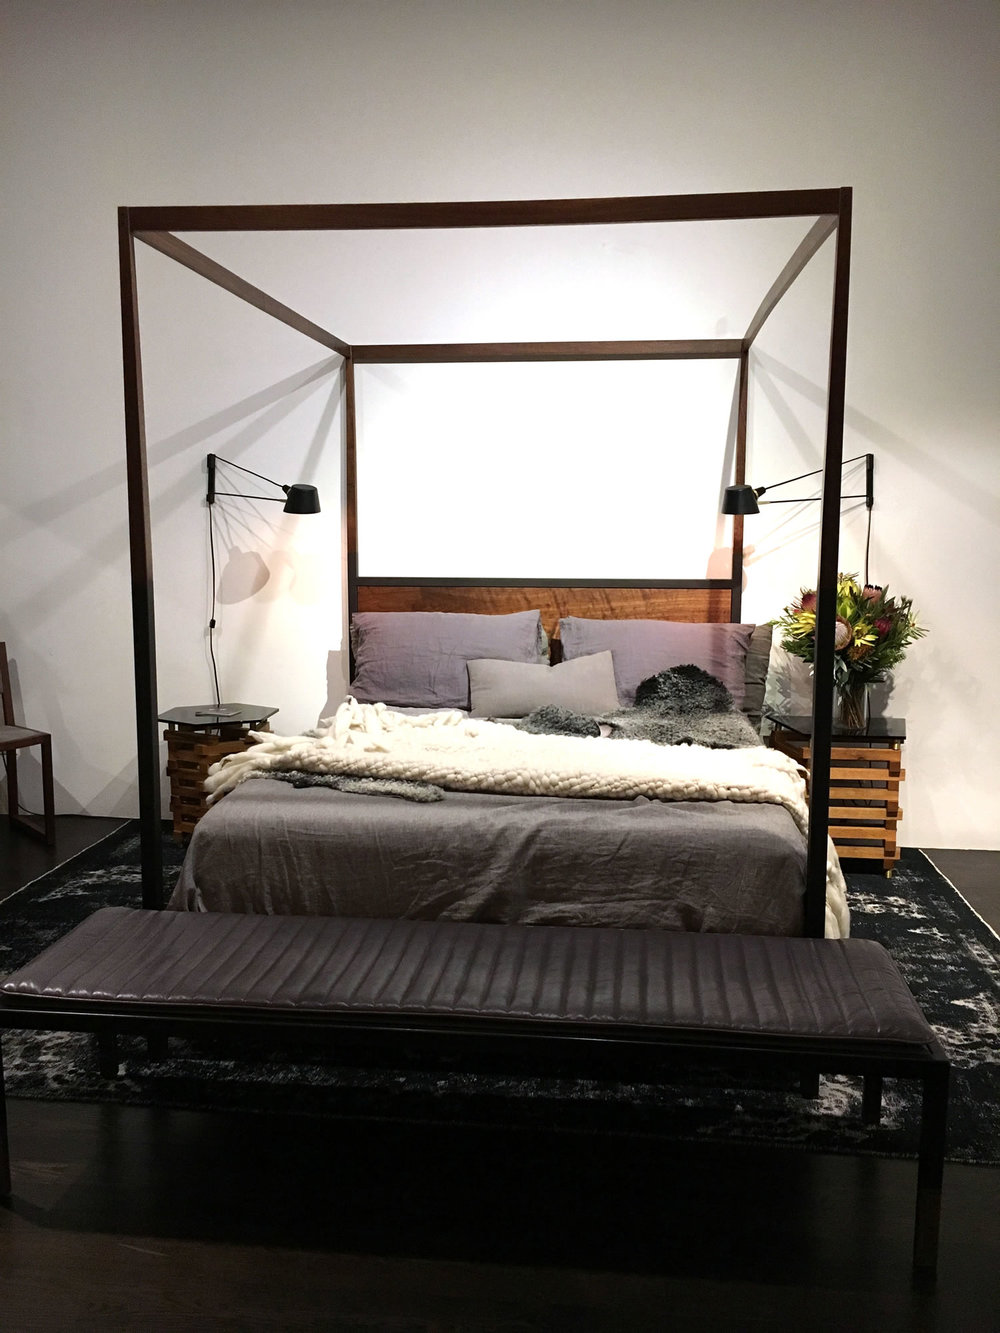 The Wright Mattress sleeps three degrees cooler than other memory foams for deeper sleep